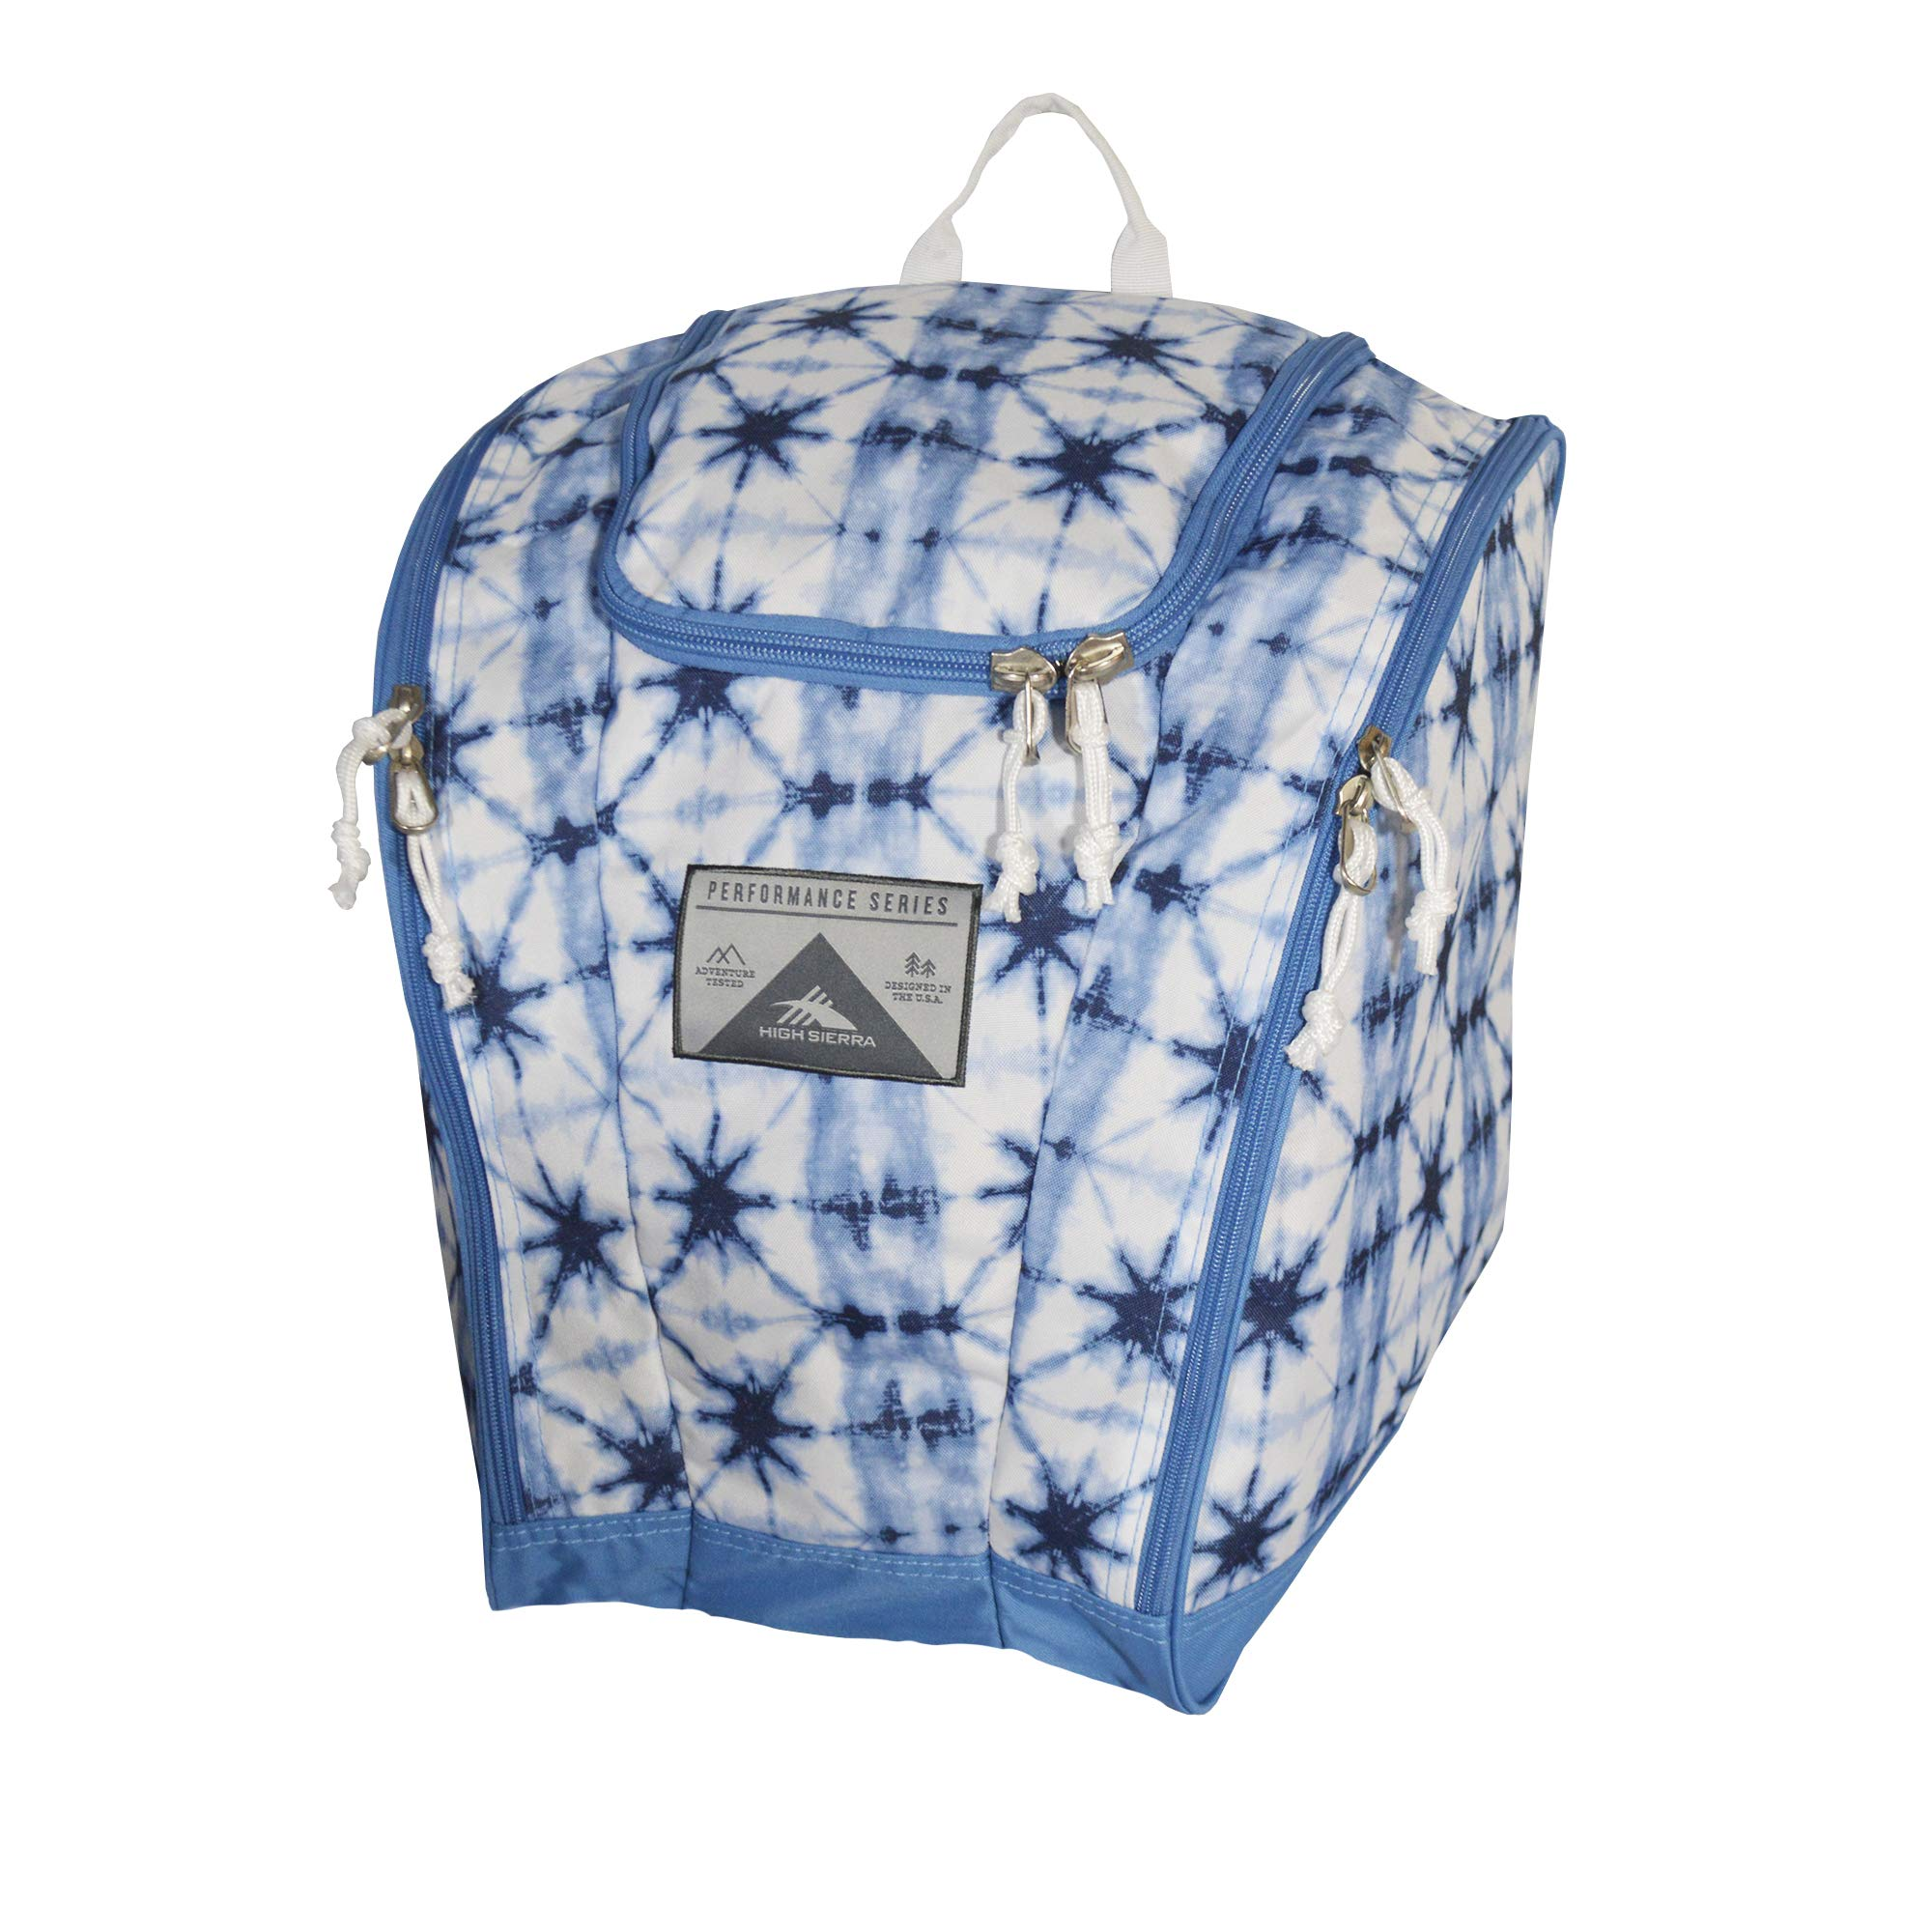 High Sierra Ski Boot Trapezoid Boot Bag, Indigo Dye/Mineral/White by High Sierra